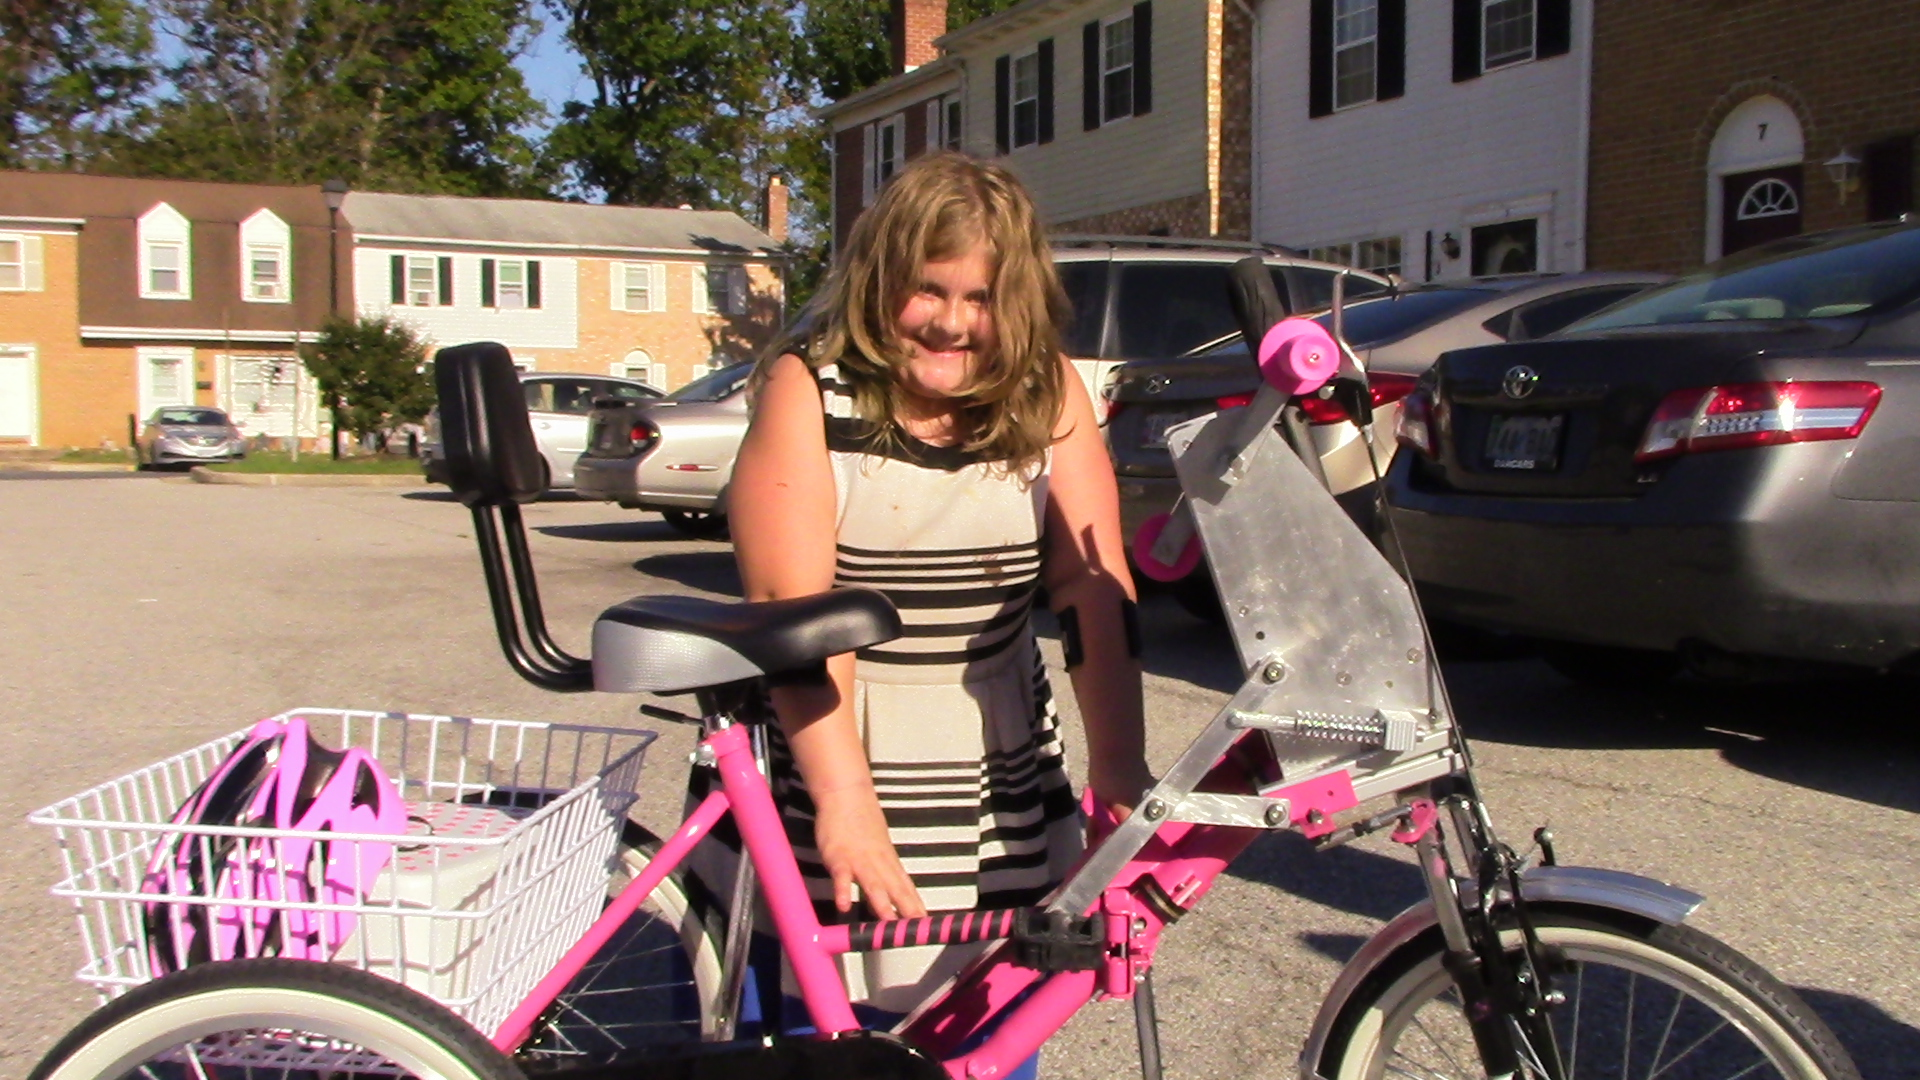 A young lady, outdoors, standing with a pink bicycle. Several cars are in the background in a parking lot.